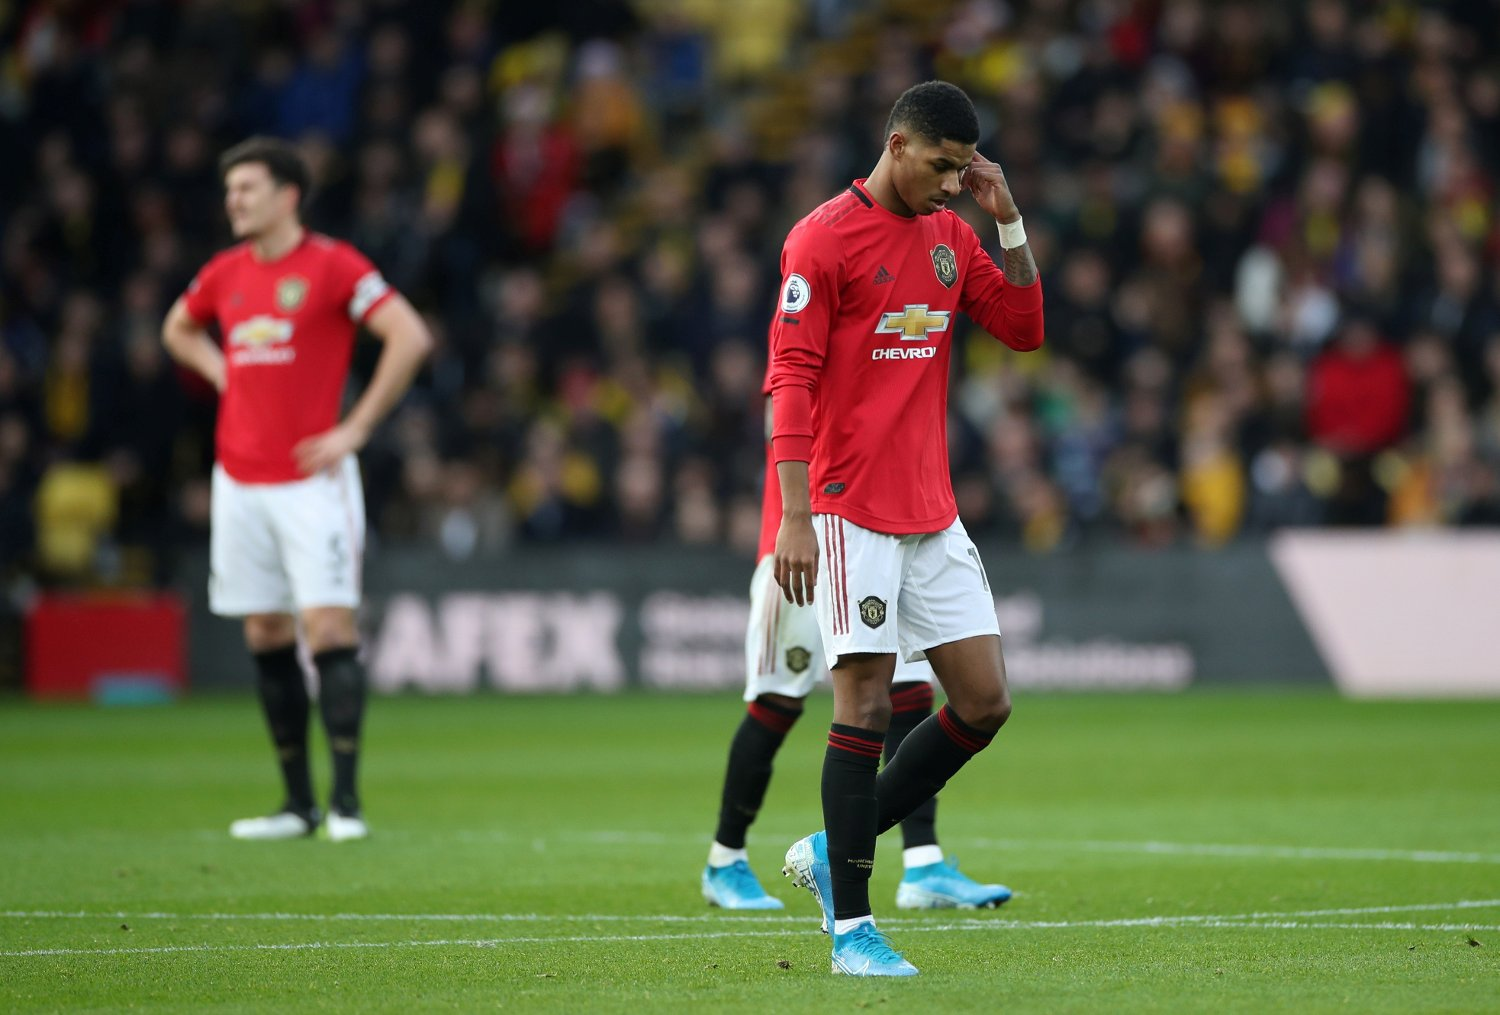 Soccer Football - Premier League - Watford v Manchester United - Vicarage Road, Watford, Britain - December 22, 2019 Manchester United's Marcus Rashford reacts REUTERS/David Klein EDITORIAL USE ONLY. No use with unauthorized audio, video, data, fixture lists, club/league logos or